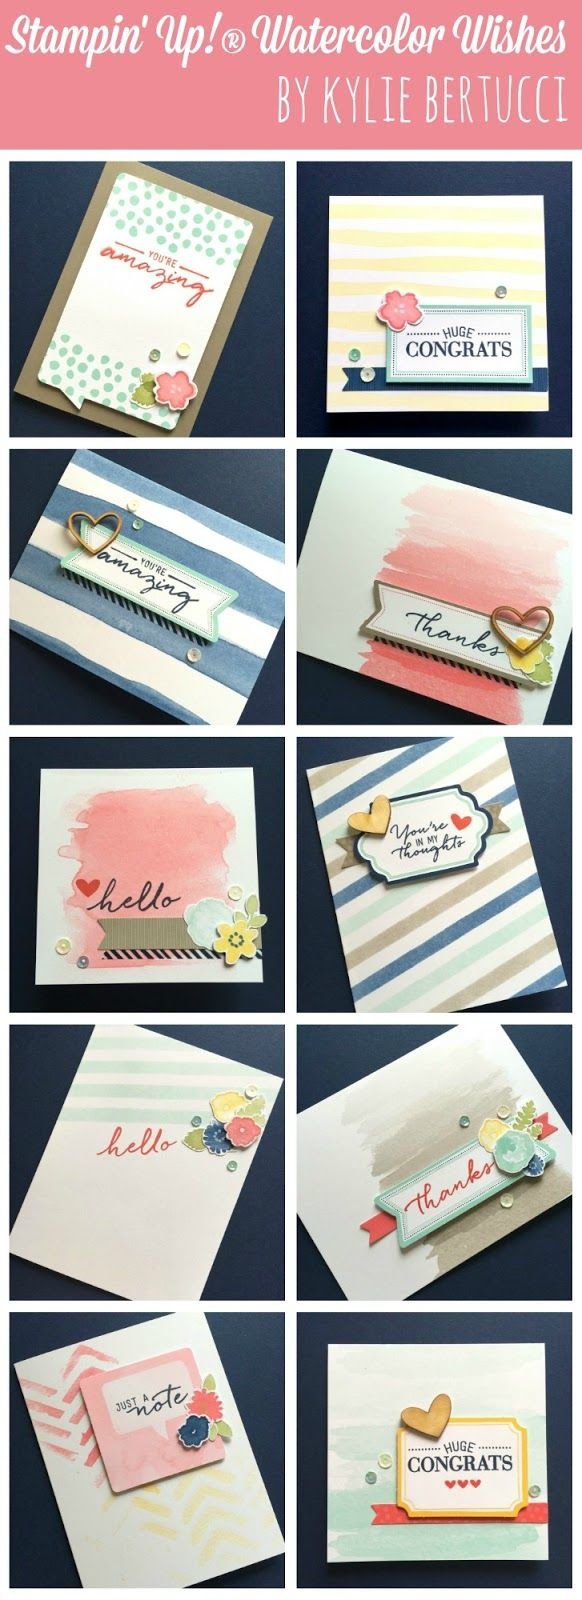 Kylie Bertucci - Watercolor Wishes Card kit come to my blog to see the other amazing projects I have made using the new Stampin' Up! products from the 2015-2016 Annual Catalogue #stampinup #watercolorwishes